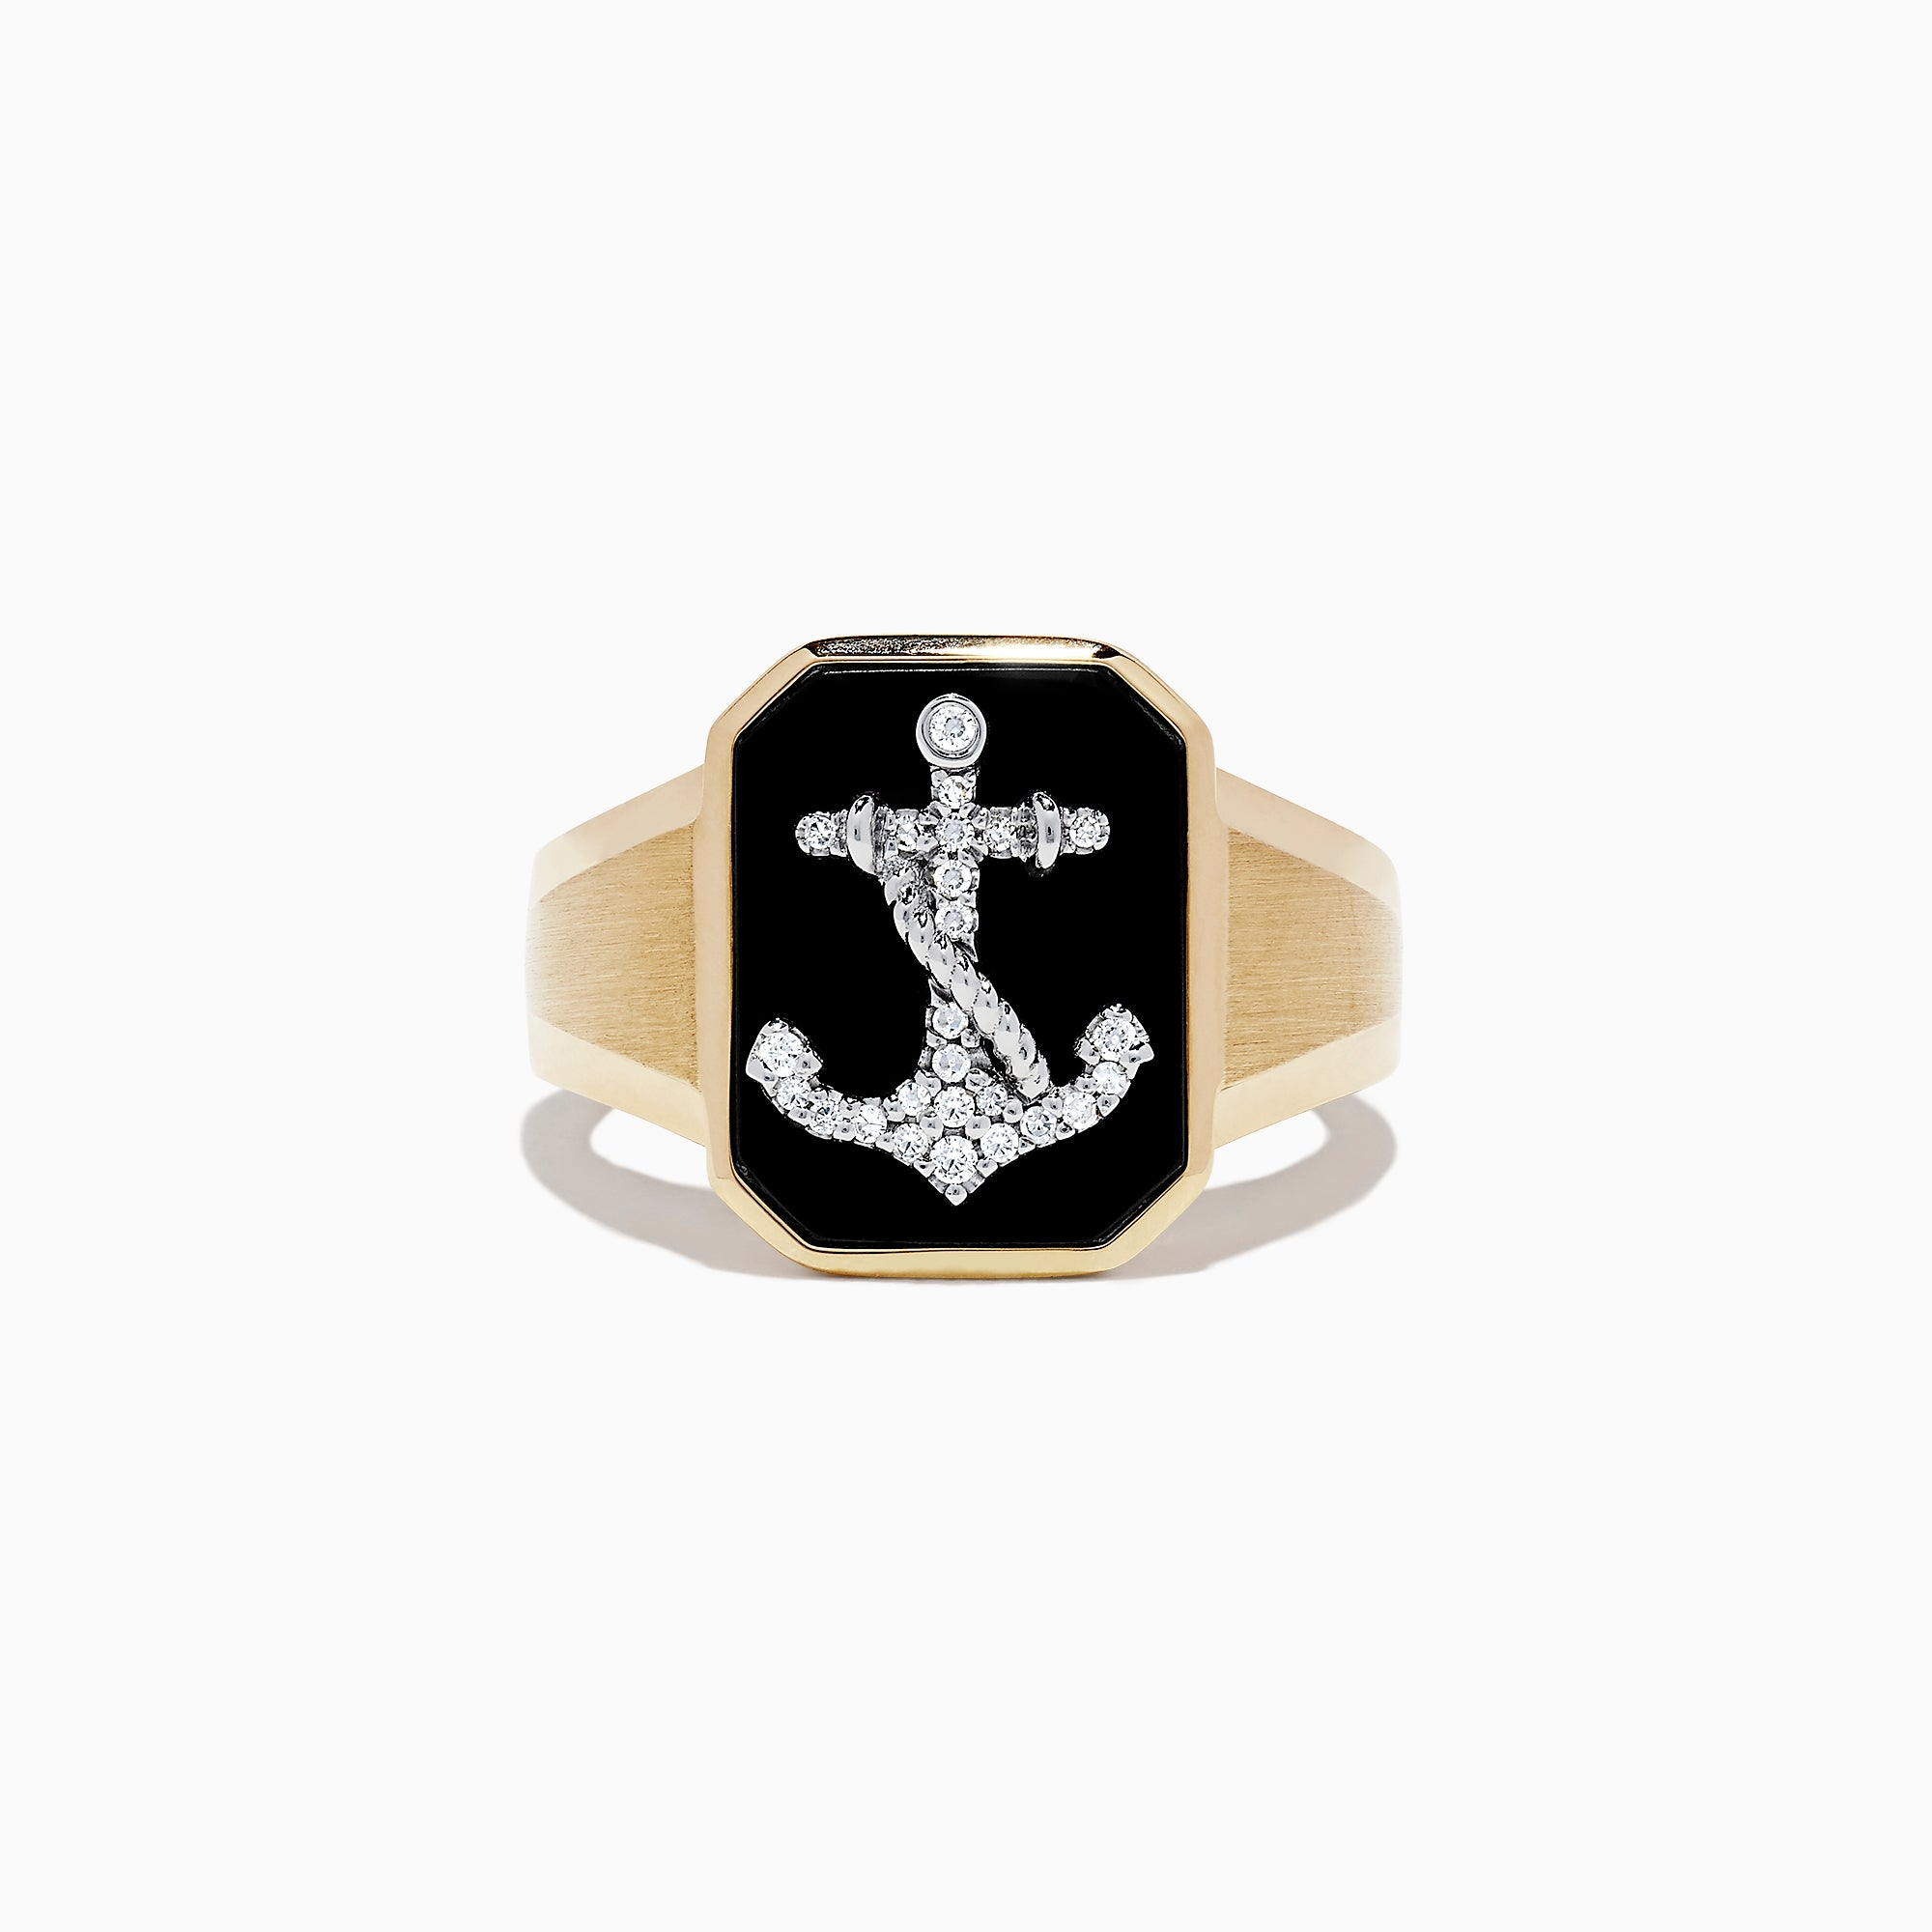 Effy Men's 14K Two Tone Gold Agate and Diamond Anchor Ring, 1.66 TCW